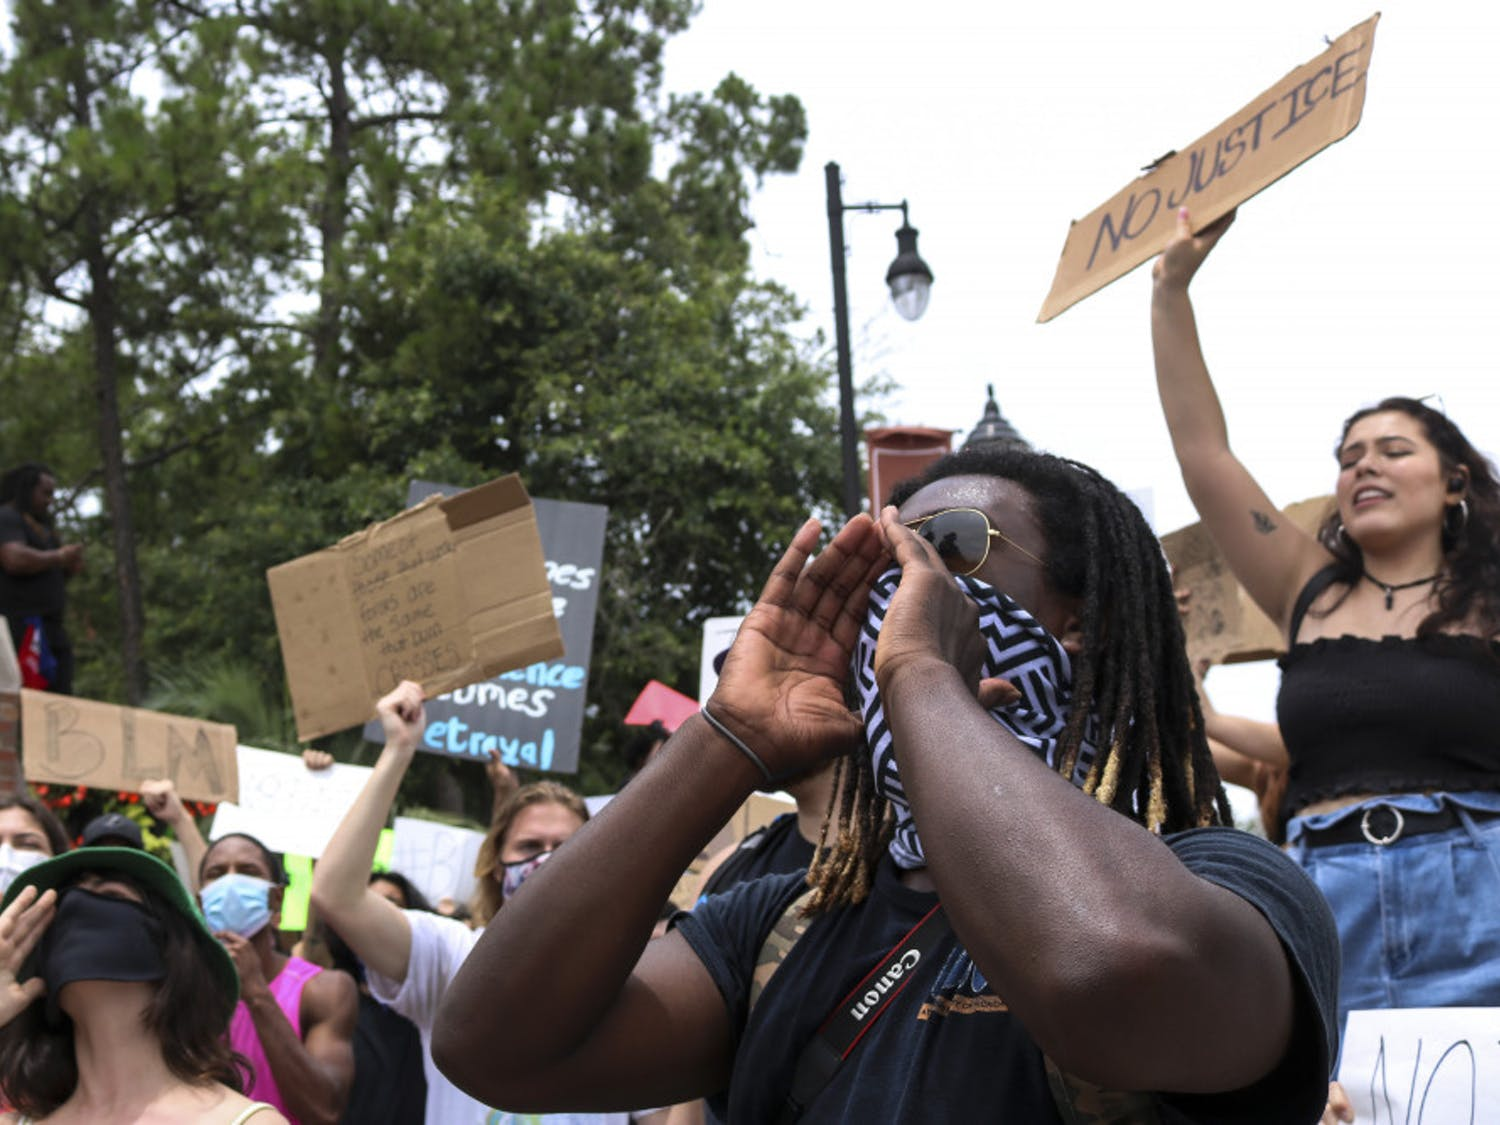 Morris McFadden, a 21-year-old telecommunications and production major and one of the organizers of the protest, shouts with the crowd of about 100 people June 3 at the intersection of 13th Street and University Avenue as part of a protest against police brutality.